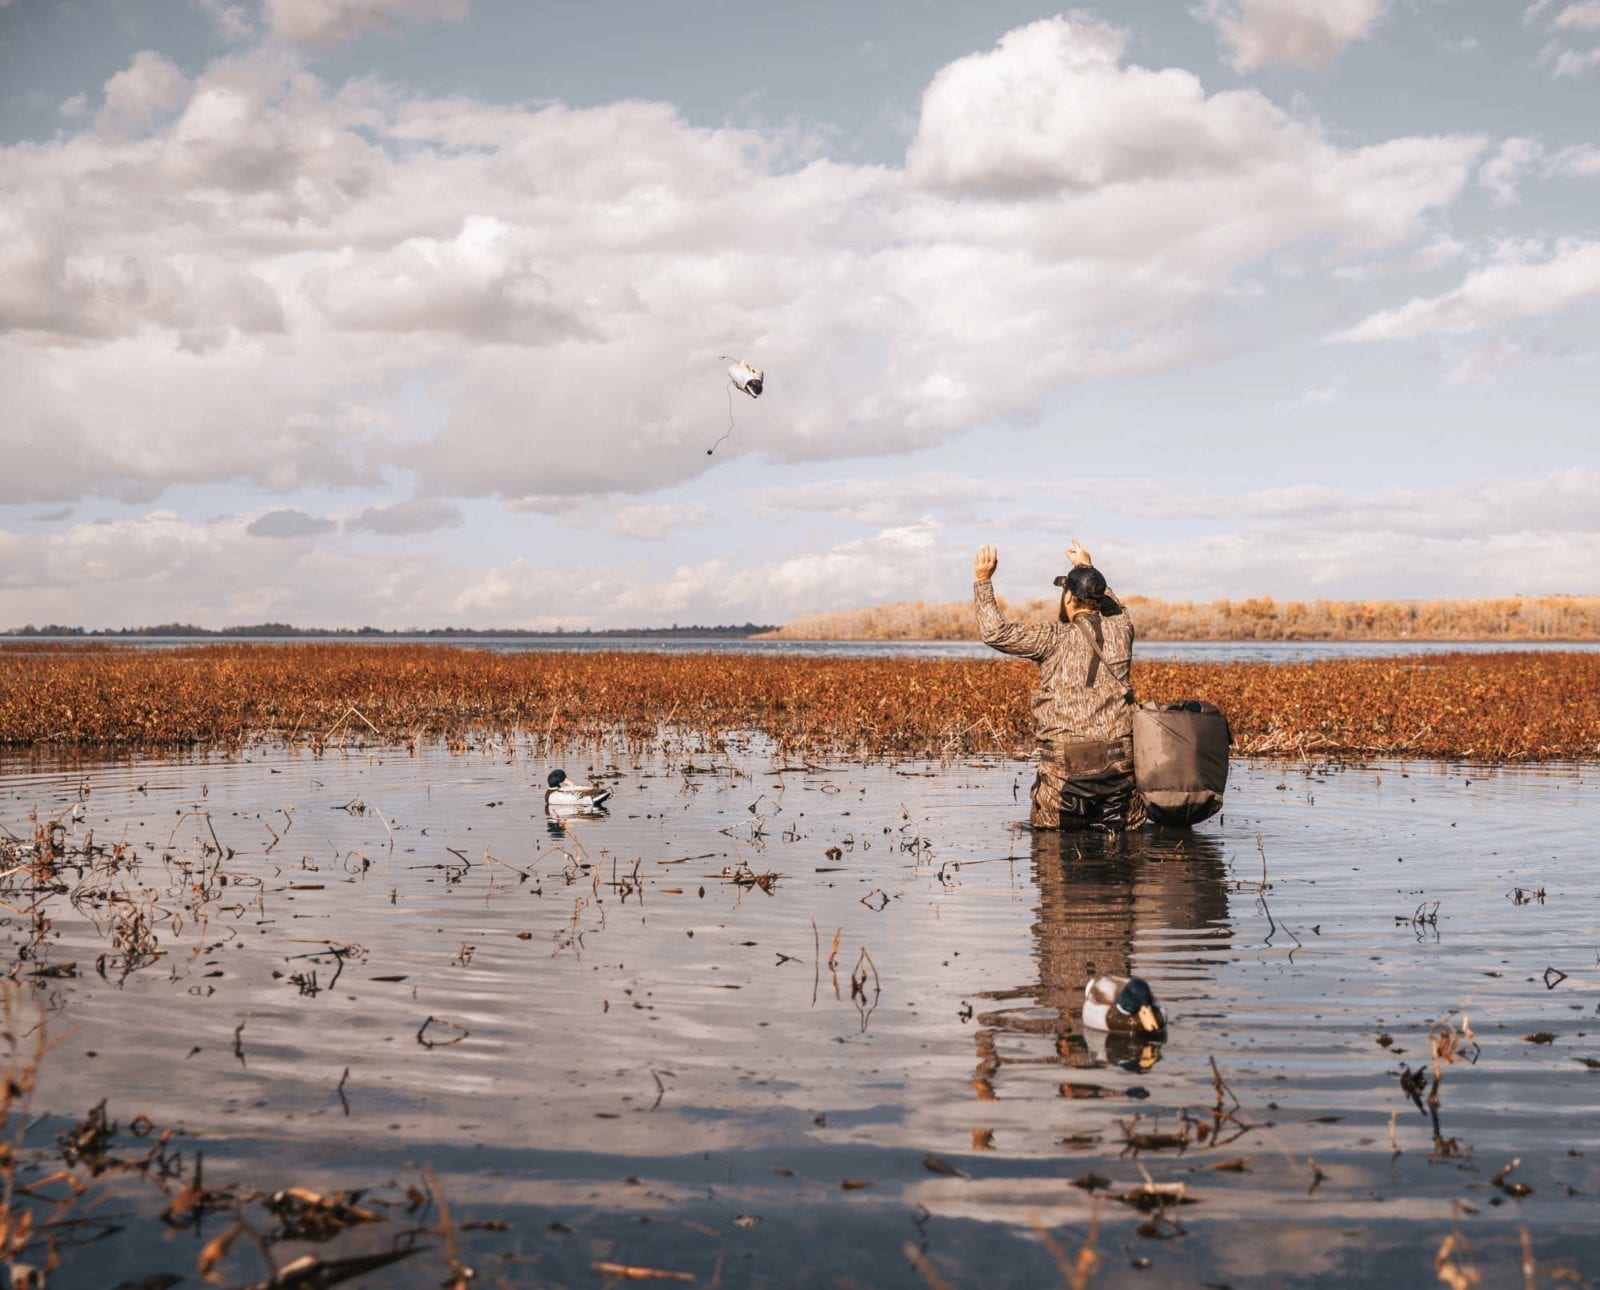 A duck hunter sets up a small decoy spread.